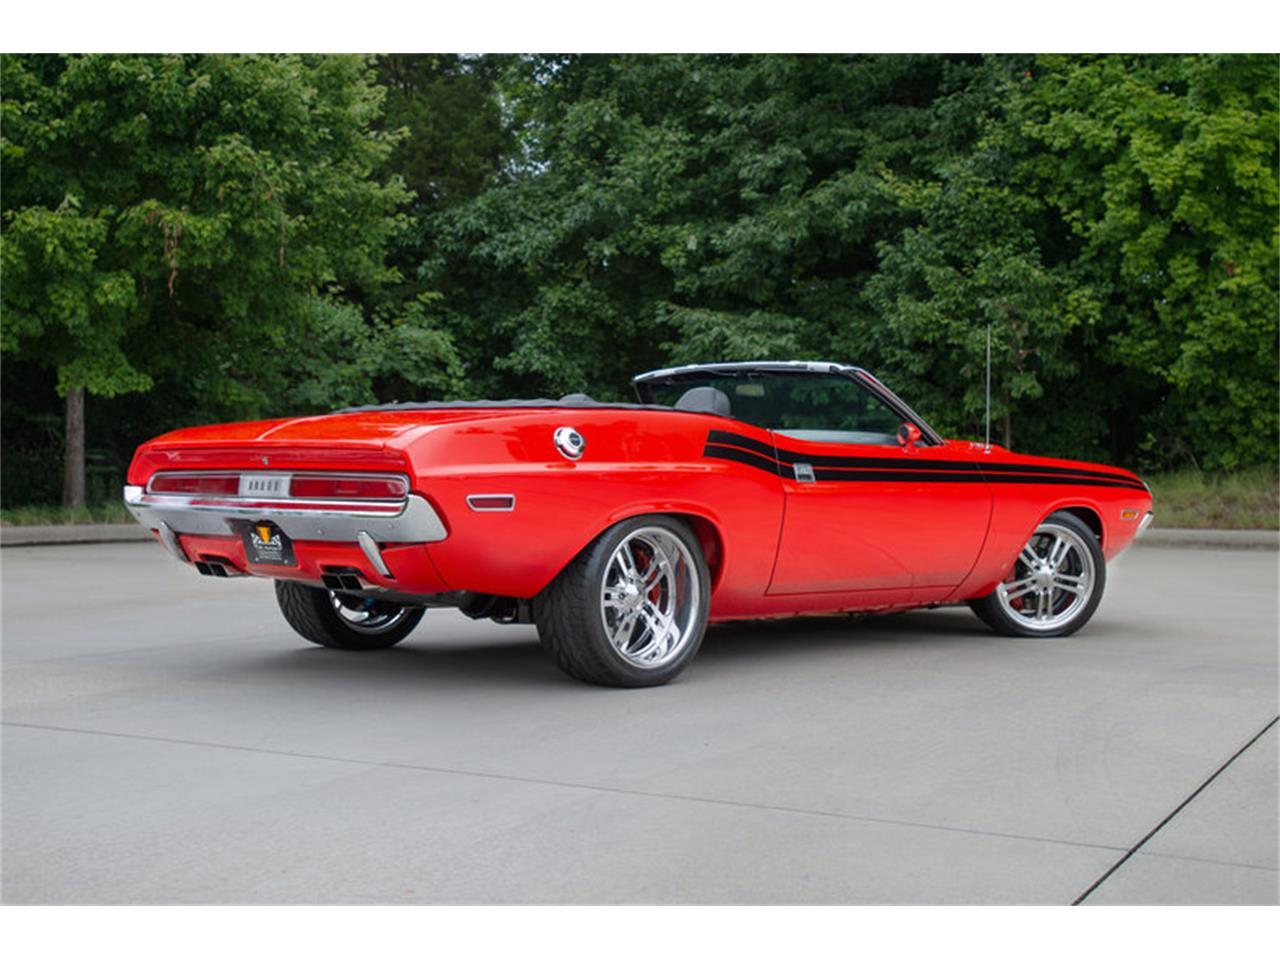 Large Picture of Classic 1970 Challenger R/T located in Charlotte North Carolina - $89,900.00 - F9K4